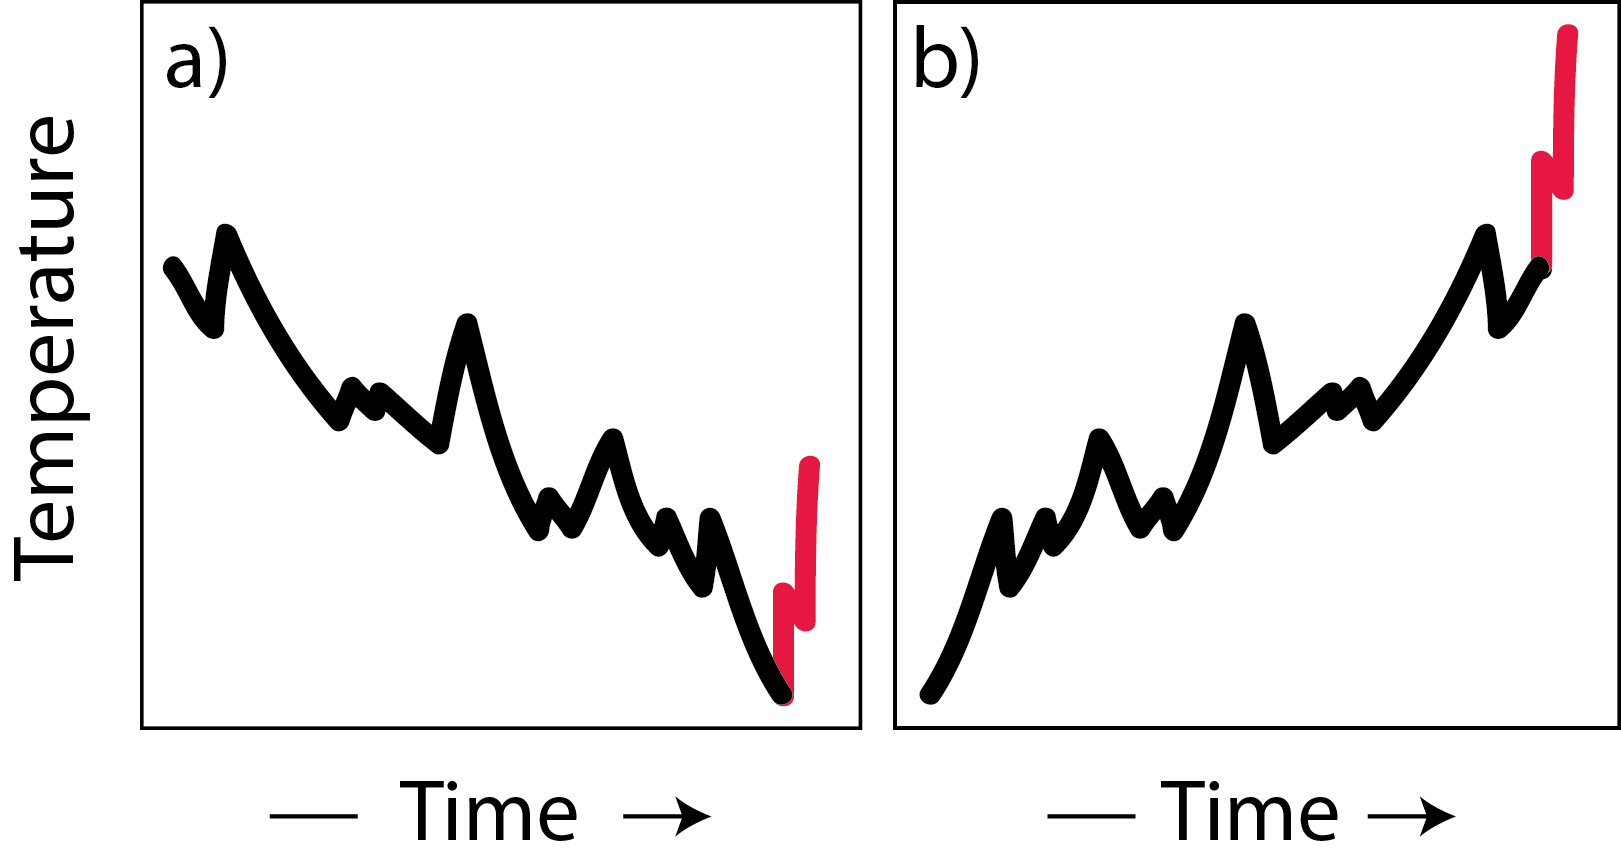 A similar temperature increase (red) is expected to differ in its effect on biota in dependence if it follows after a period of long-term cooling (a) or warming (b). Such interactions influence the reliable use of the fossil record for assessing extinction risk of extant species and may also help understanding why some temperature changes in the past were followed by extinctions, while others of similar magnitude had little effect.